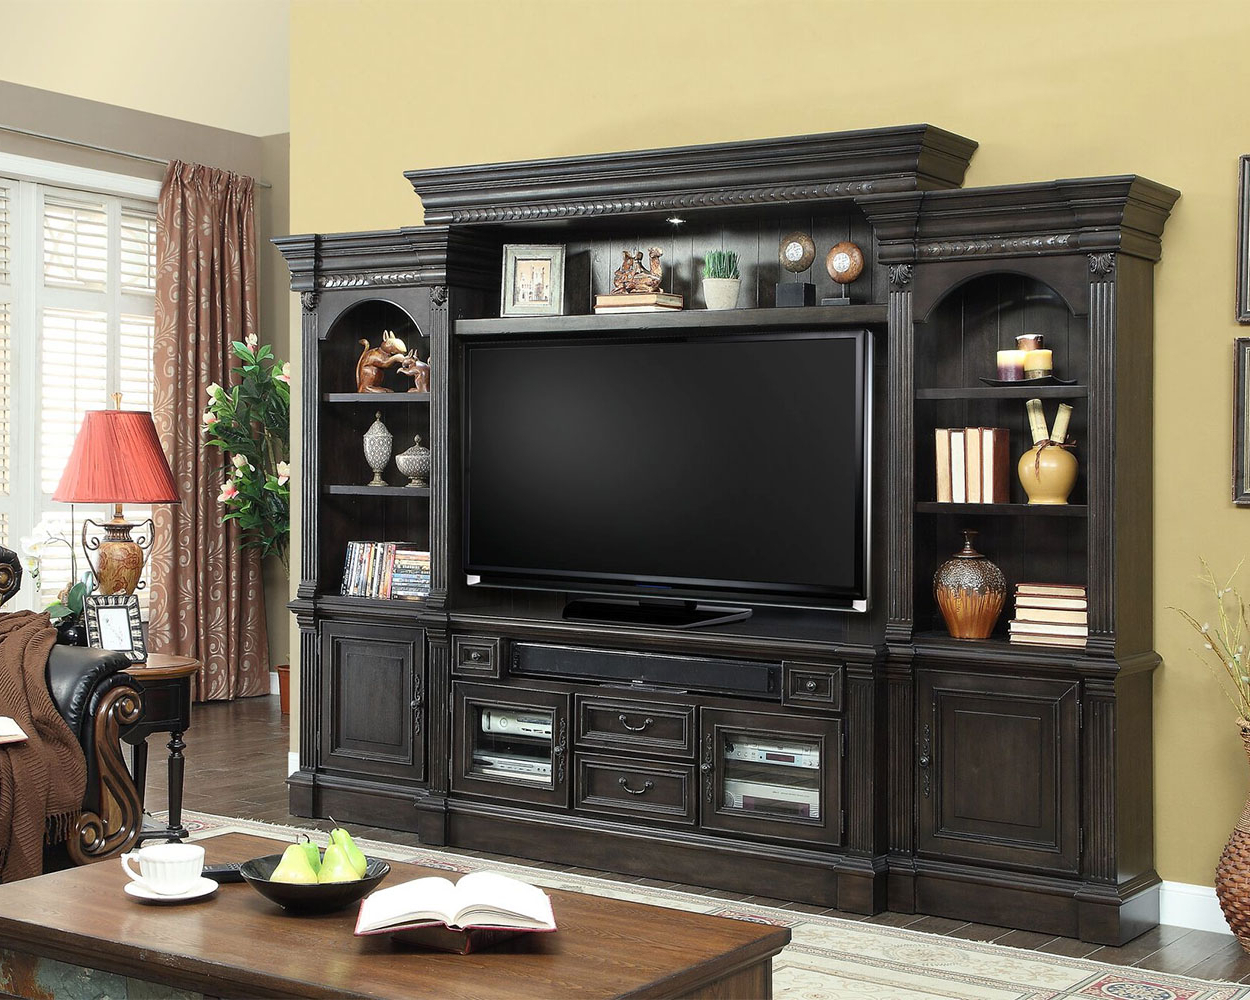 Furniture: Display Space For Audio Components And Collectibles With In Popular 60 Inch Tv Wall Units (View 12 of 20)